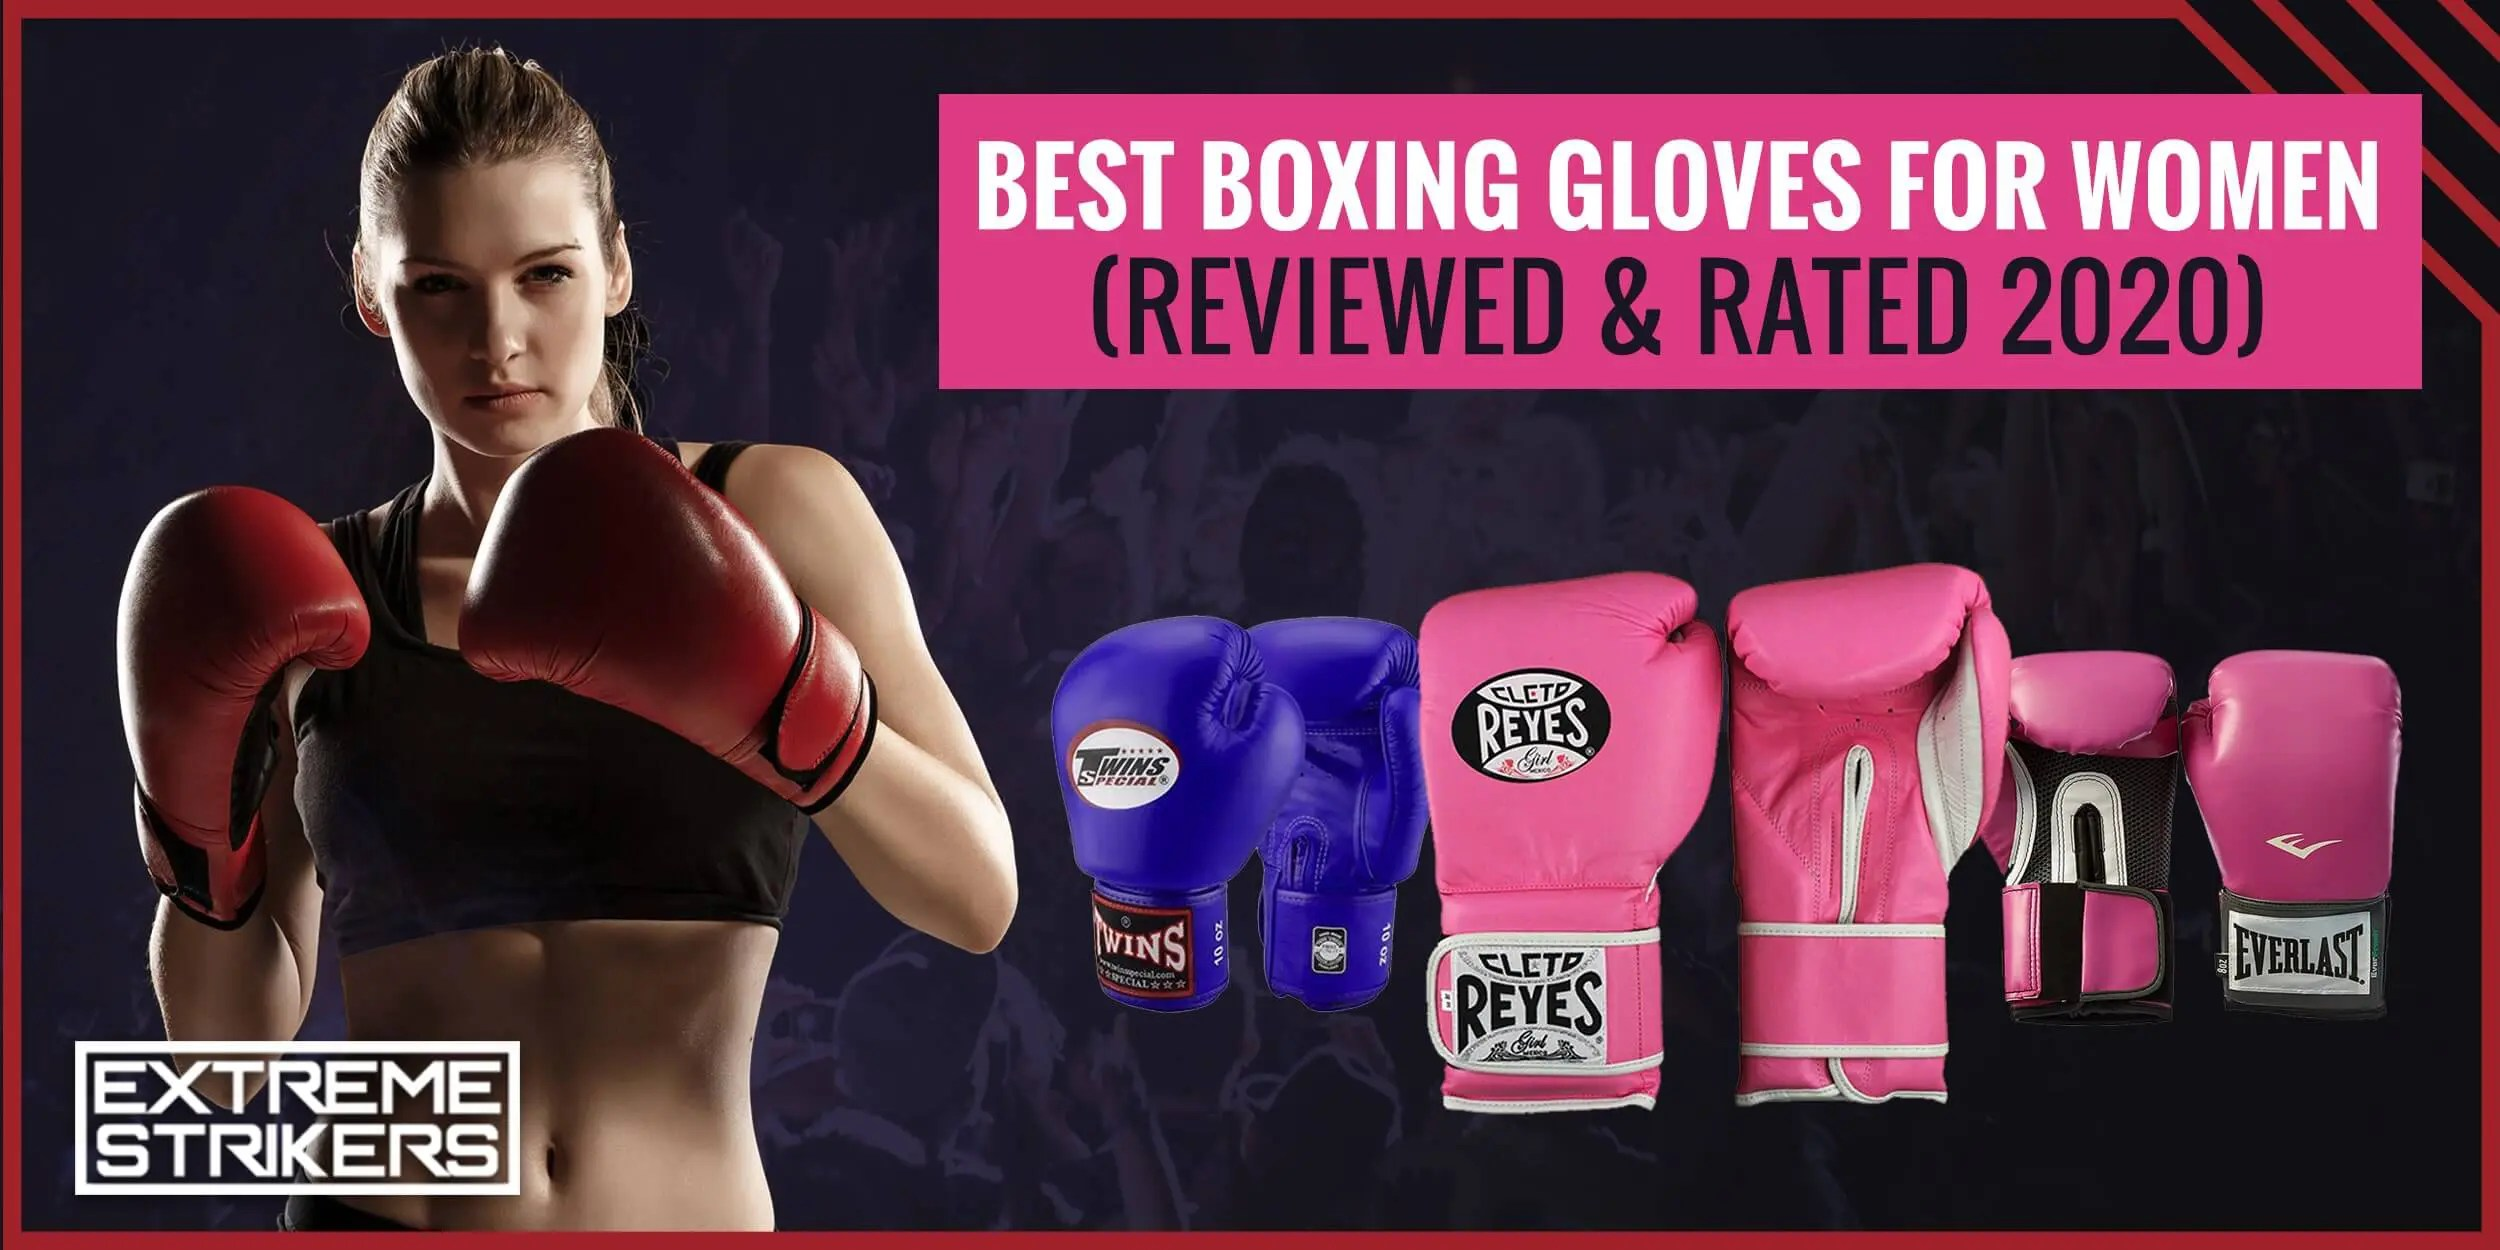 Best Boxing Gloves for Women (REVIEWED & RATED 2020)